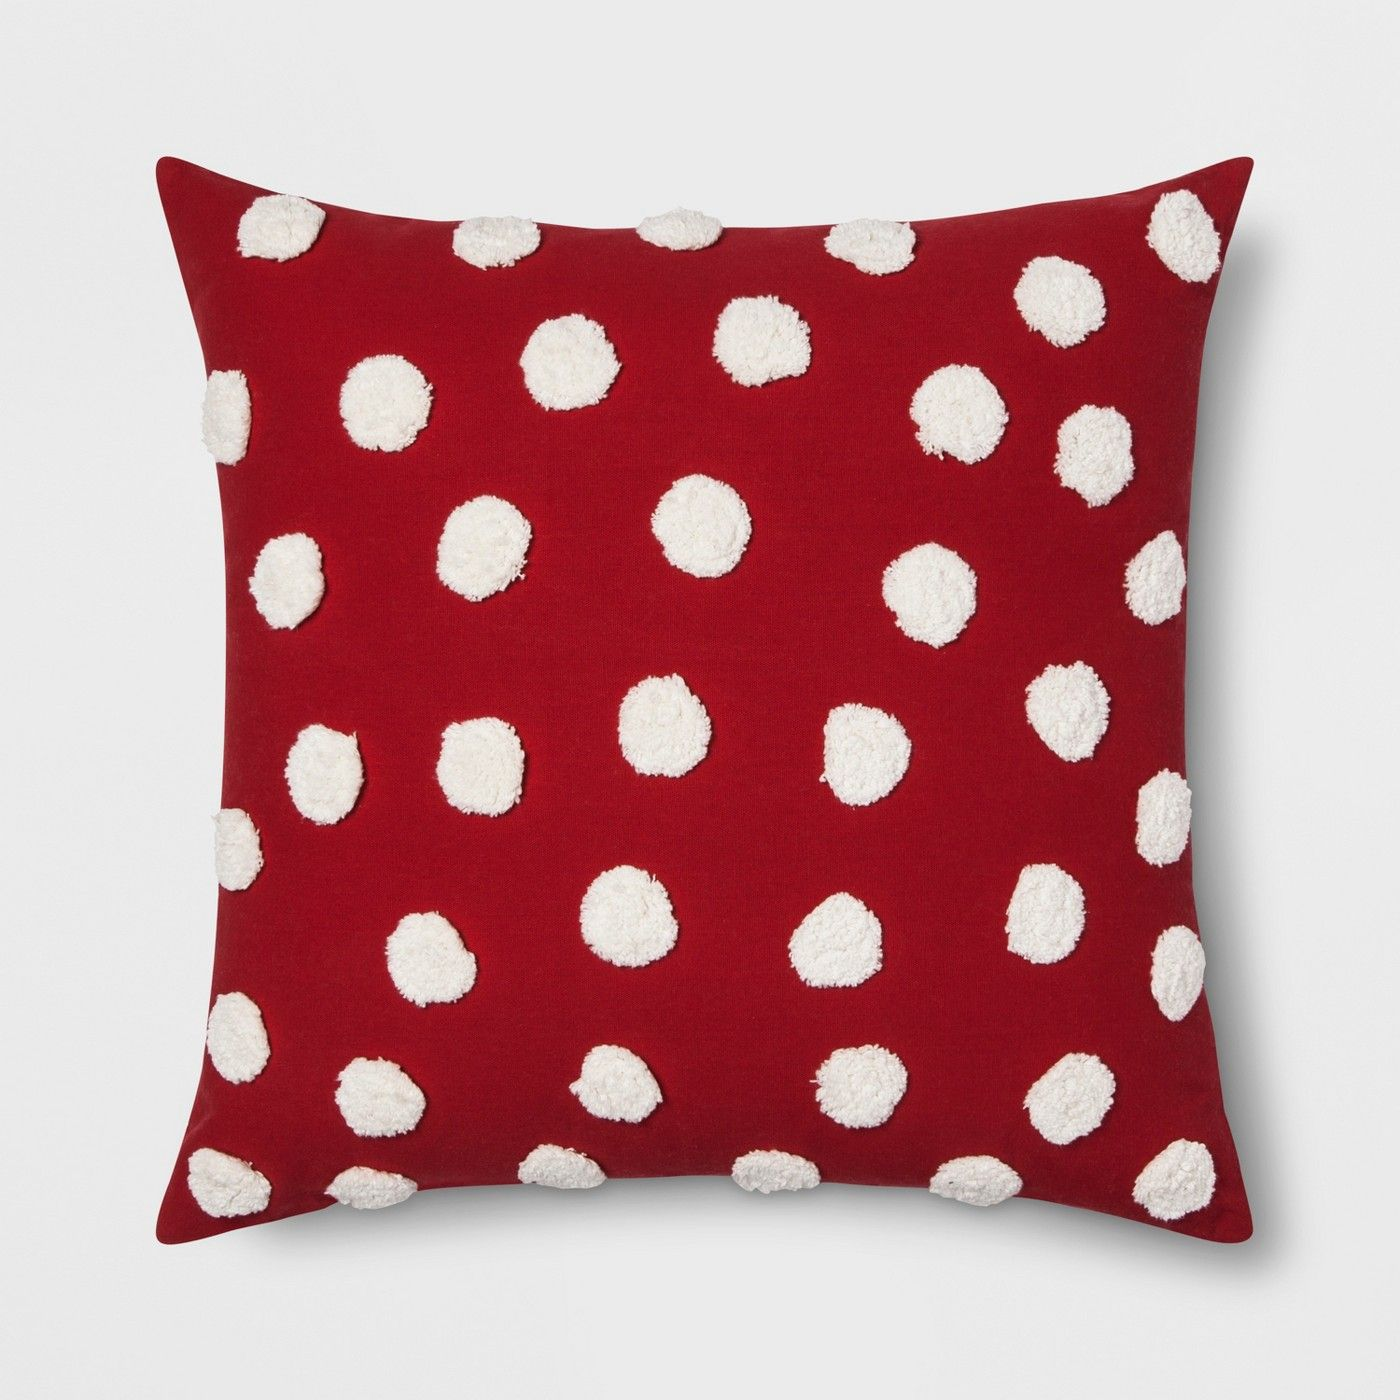 Best Target Christmas Decorations 2018 Red Throw Pillows